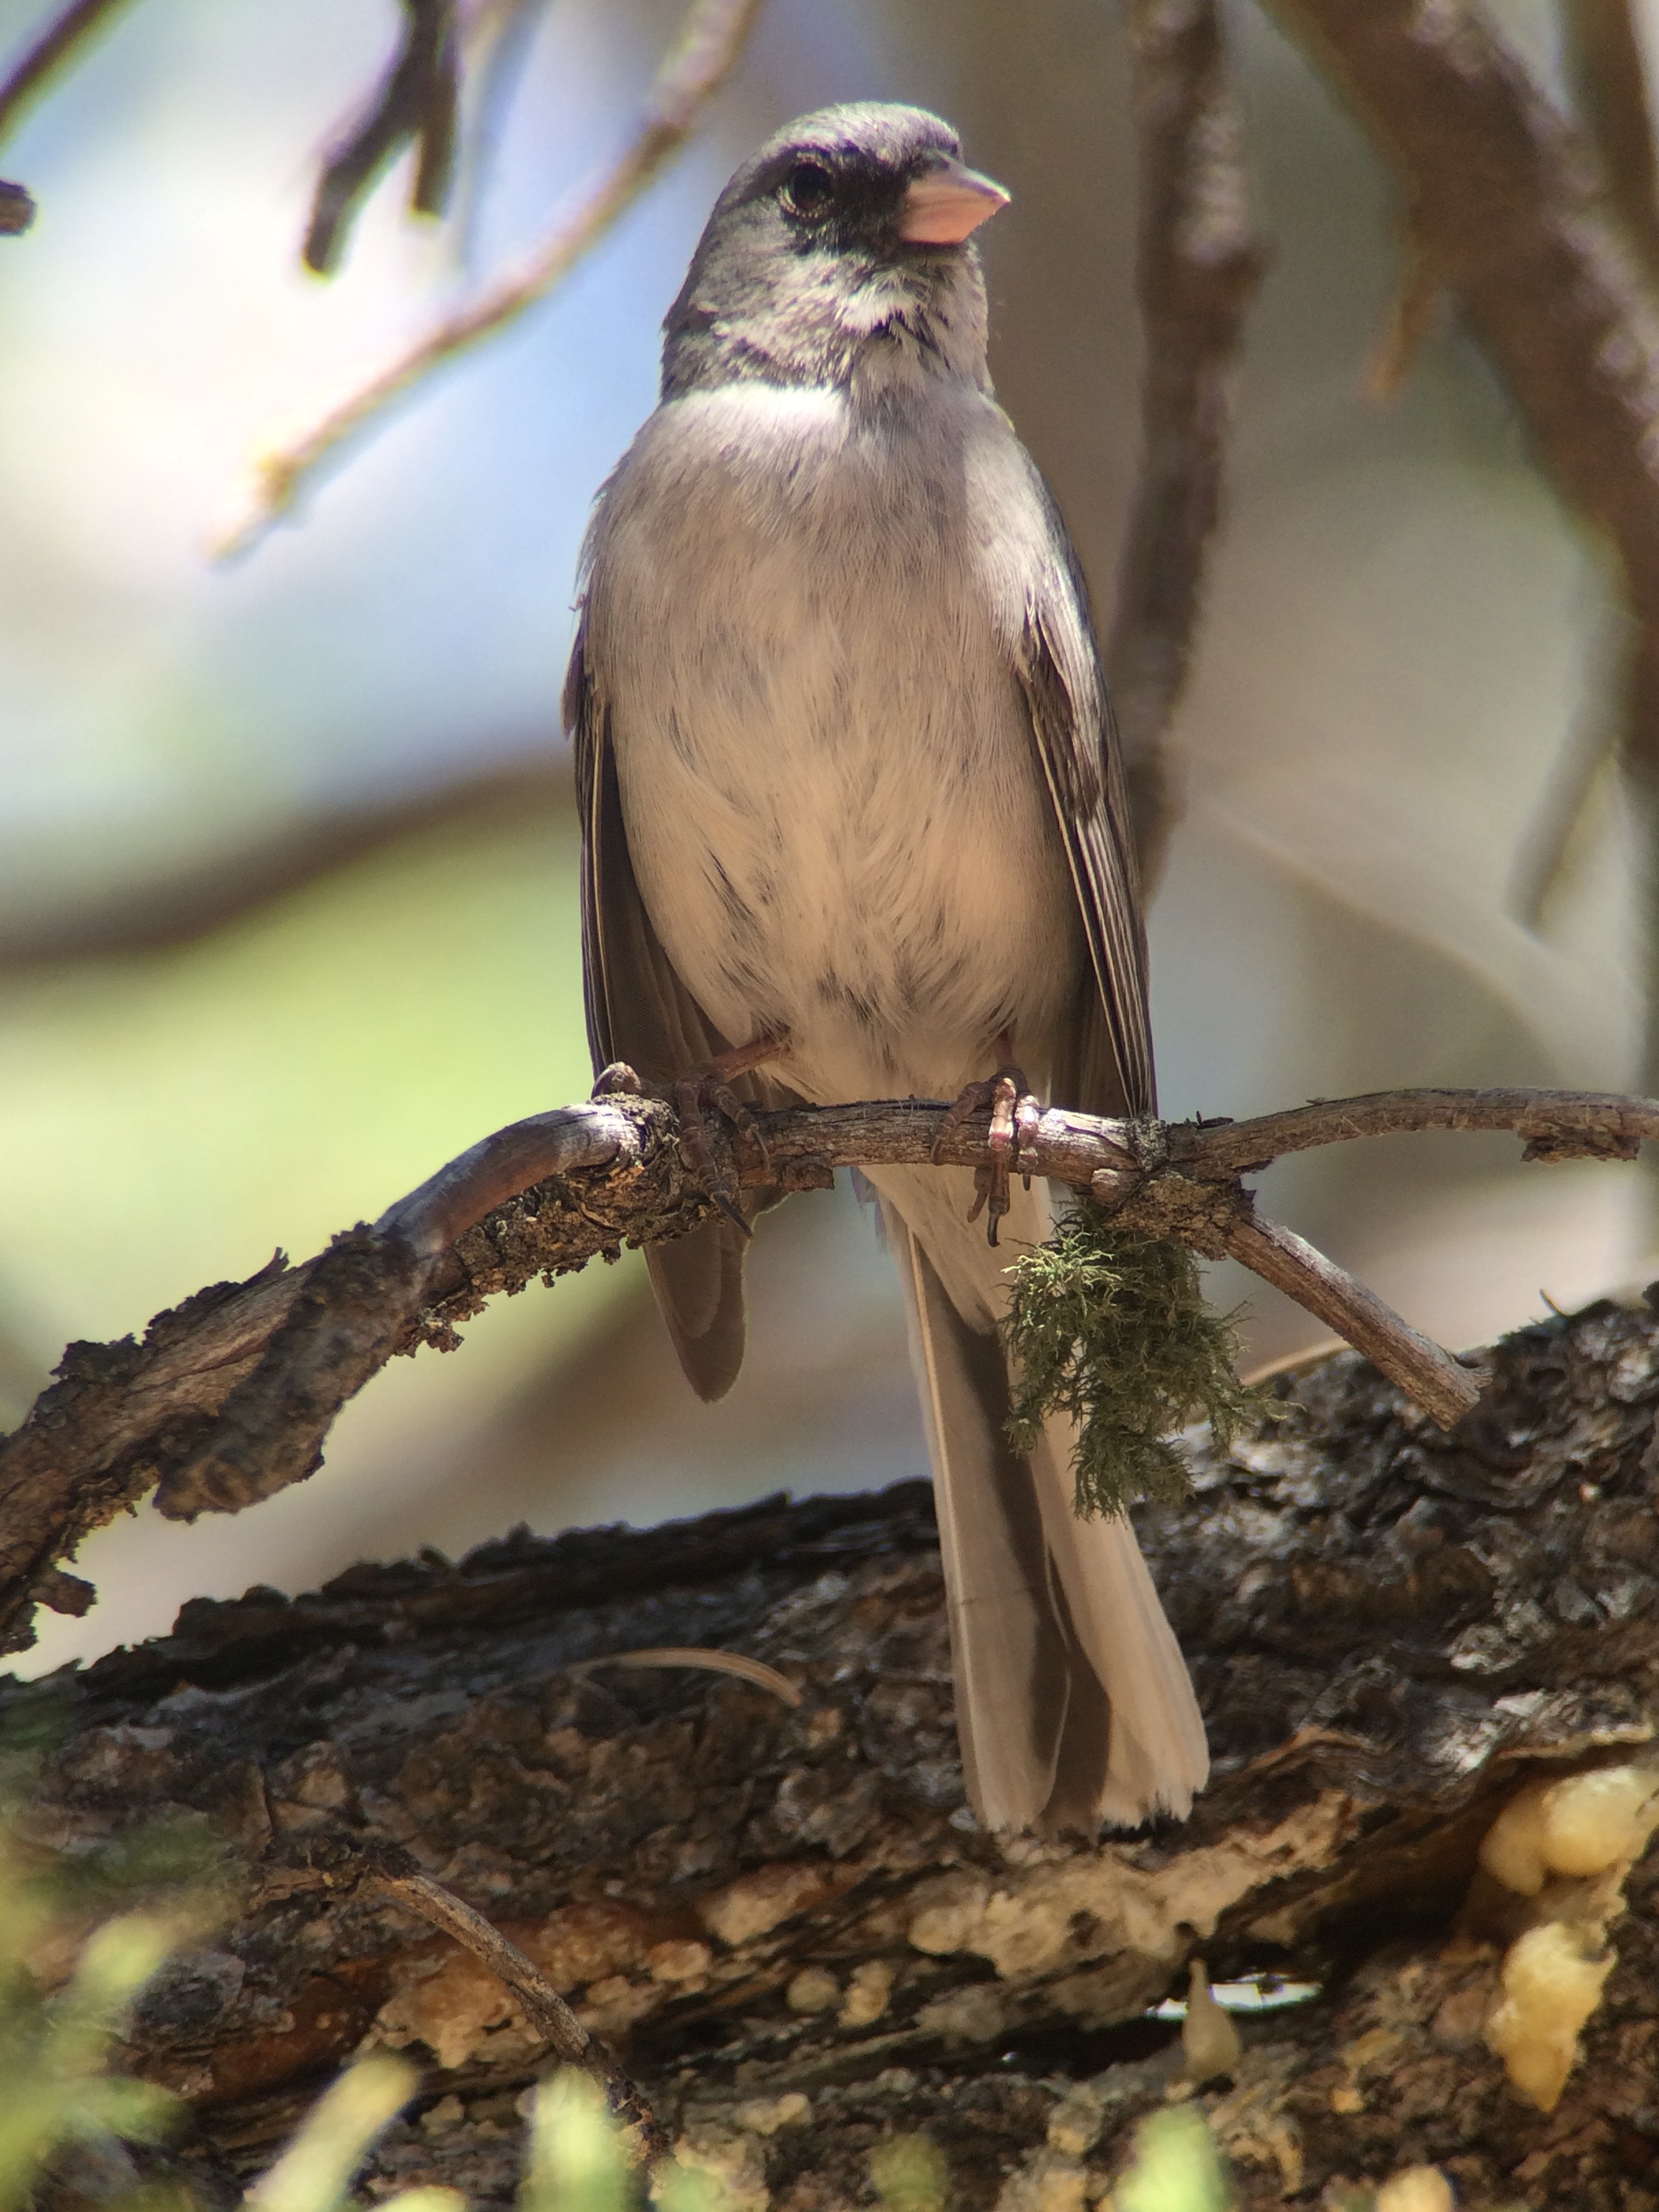 Dark-eyed juncos were all over but these were the southwestern race of red-backed juncos.